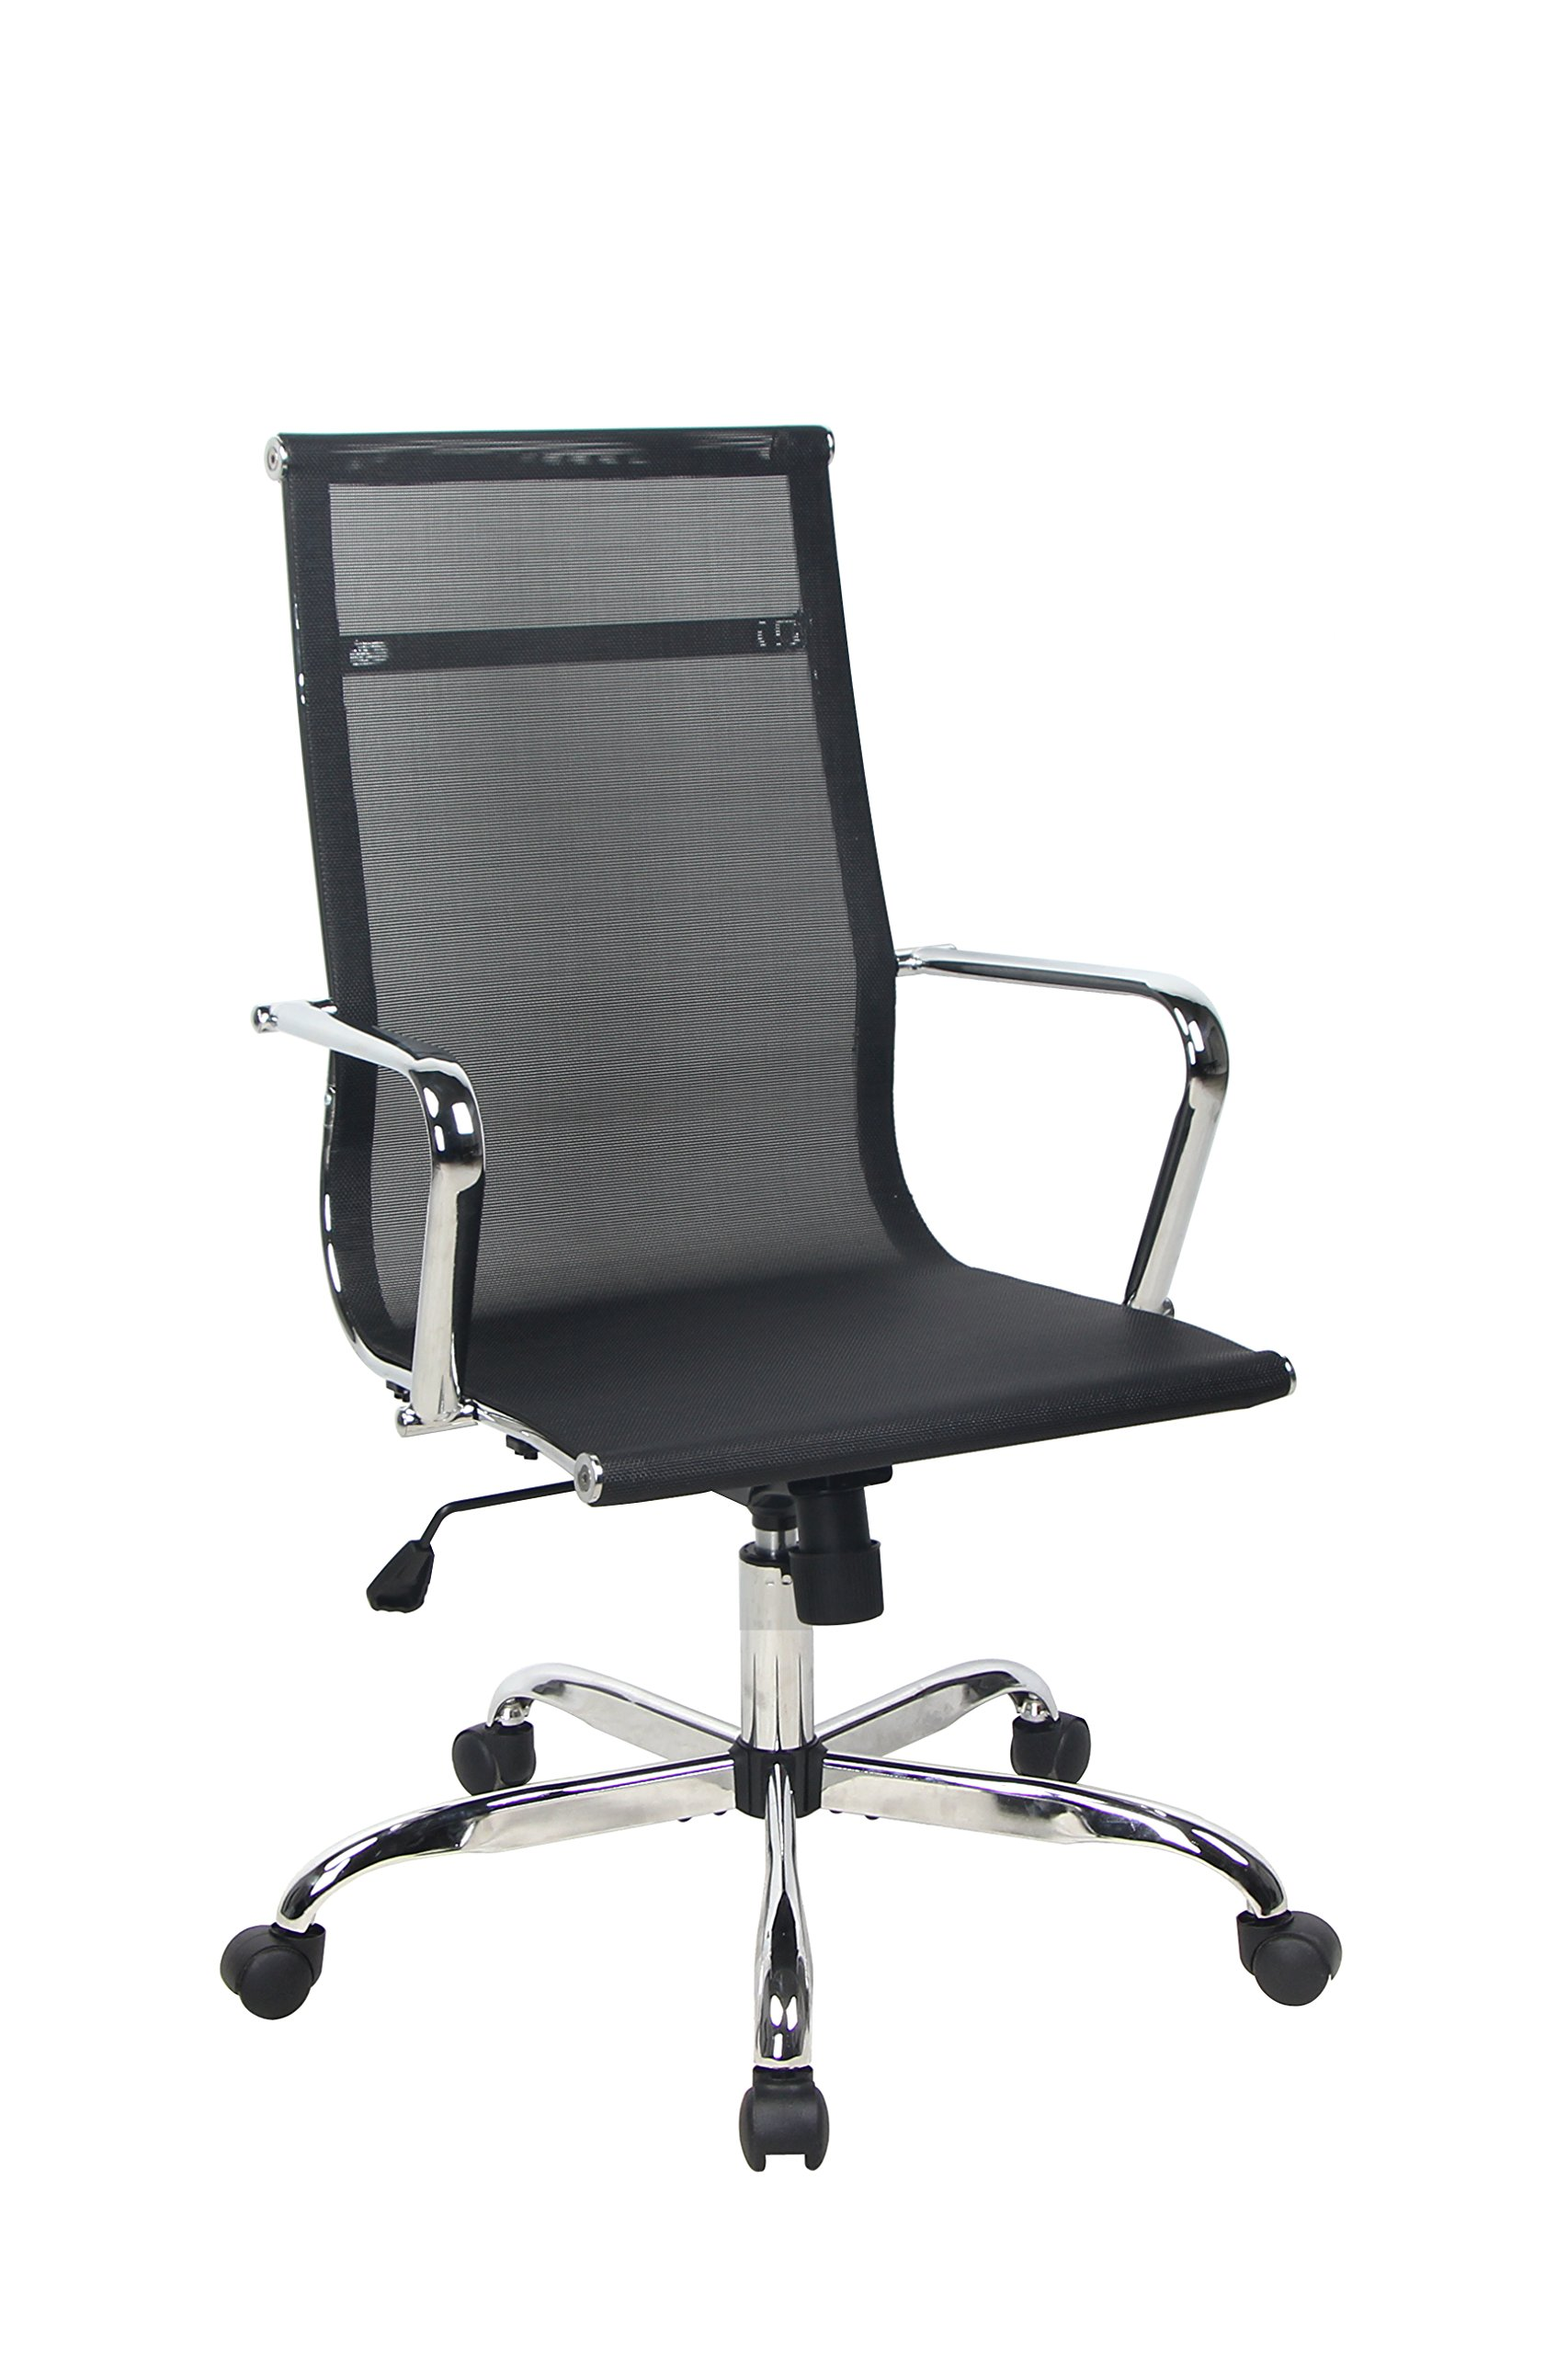 by at fice blackplatinum motivate chairs nestingstacking office ergonomic flex body chair home back furniture ideas hon depot